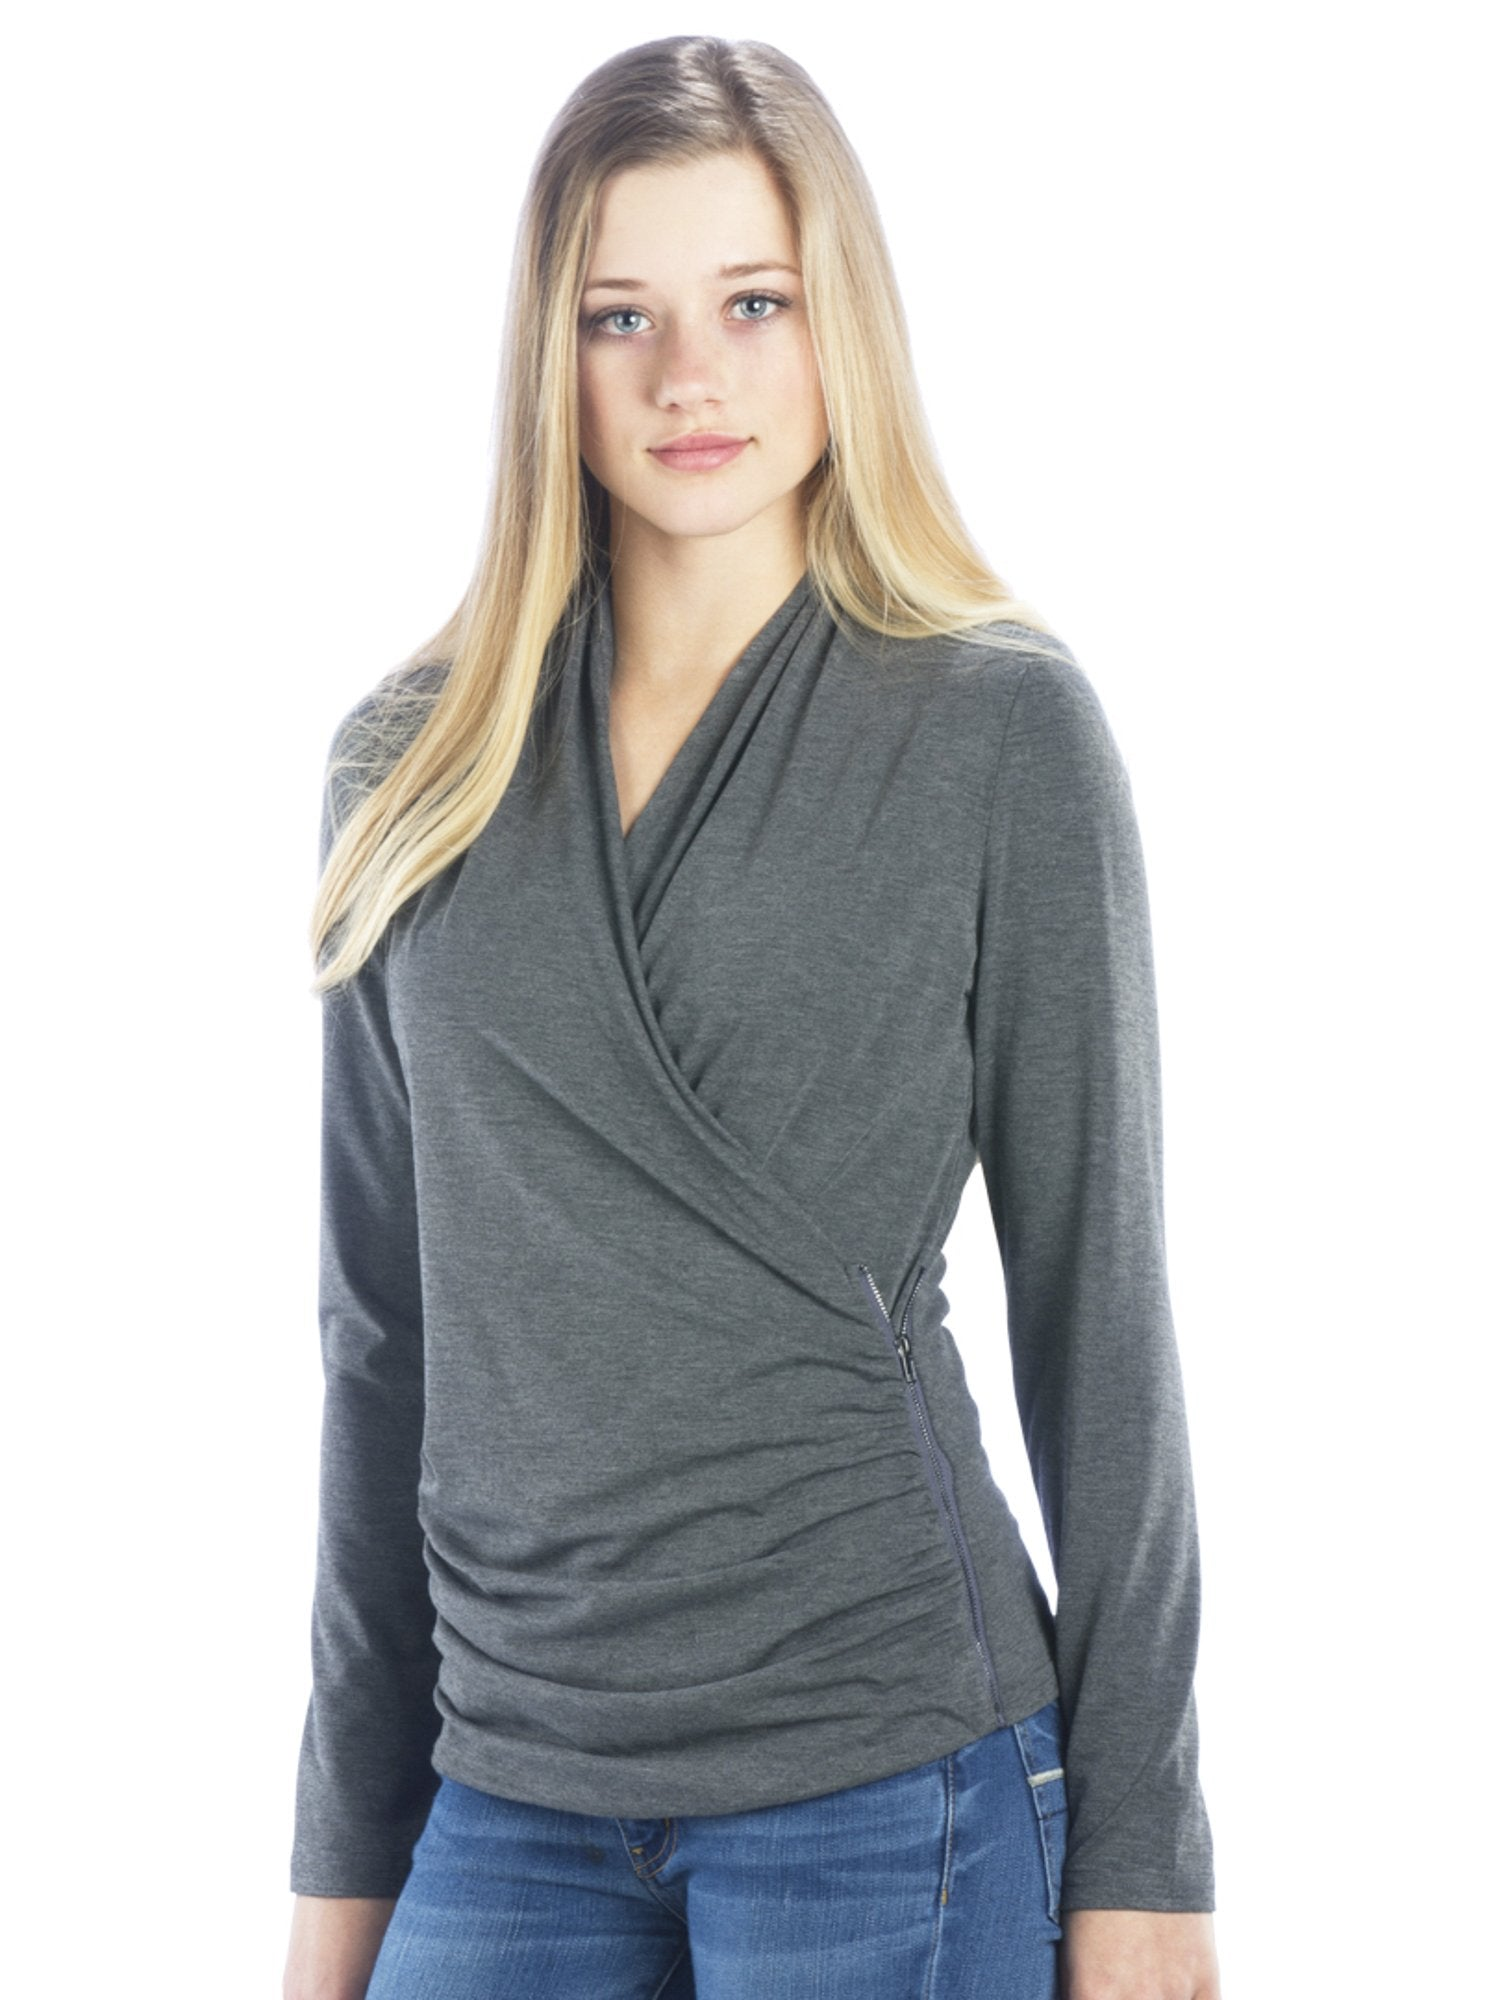 V Neck Faux Wrap Top with Zipper Side in Charcoal